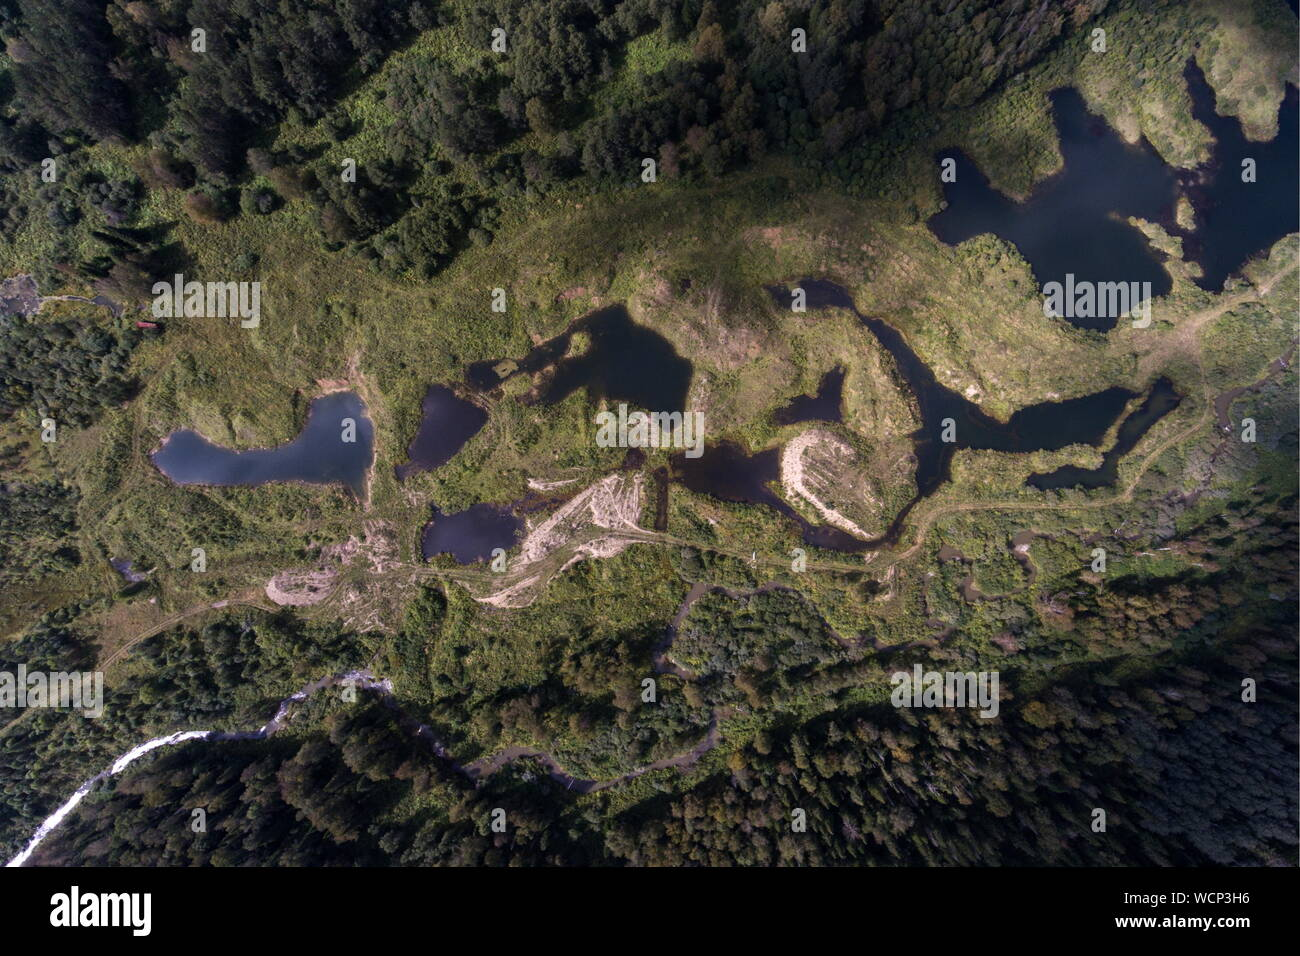 Russia. 28th Aug, 2019. ALTAI TERRITORY, RUSSIA - AUGUST 28, 2019: An aerial image of a locality in Togul District of Russia's Altai Territory, which is to become part of a protected area under the working name of Togul National Park; according to the Russian government's project Ekologia (Ecology), the proposed national park is to be established by 2024 and to include parts of Zarinsk District, Togul District, and Yeltsovka District of the Altai Territory, with a total area of over 160 hectares. Kirill Kukhmar/TASS Credit: ITAR-TASS News Agency/Alamy Live News Stock Photo